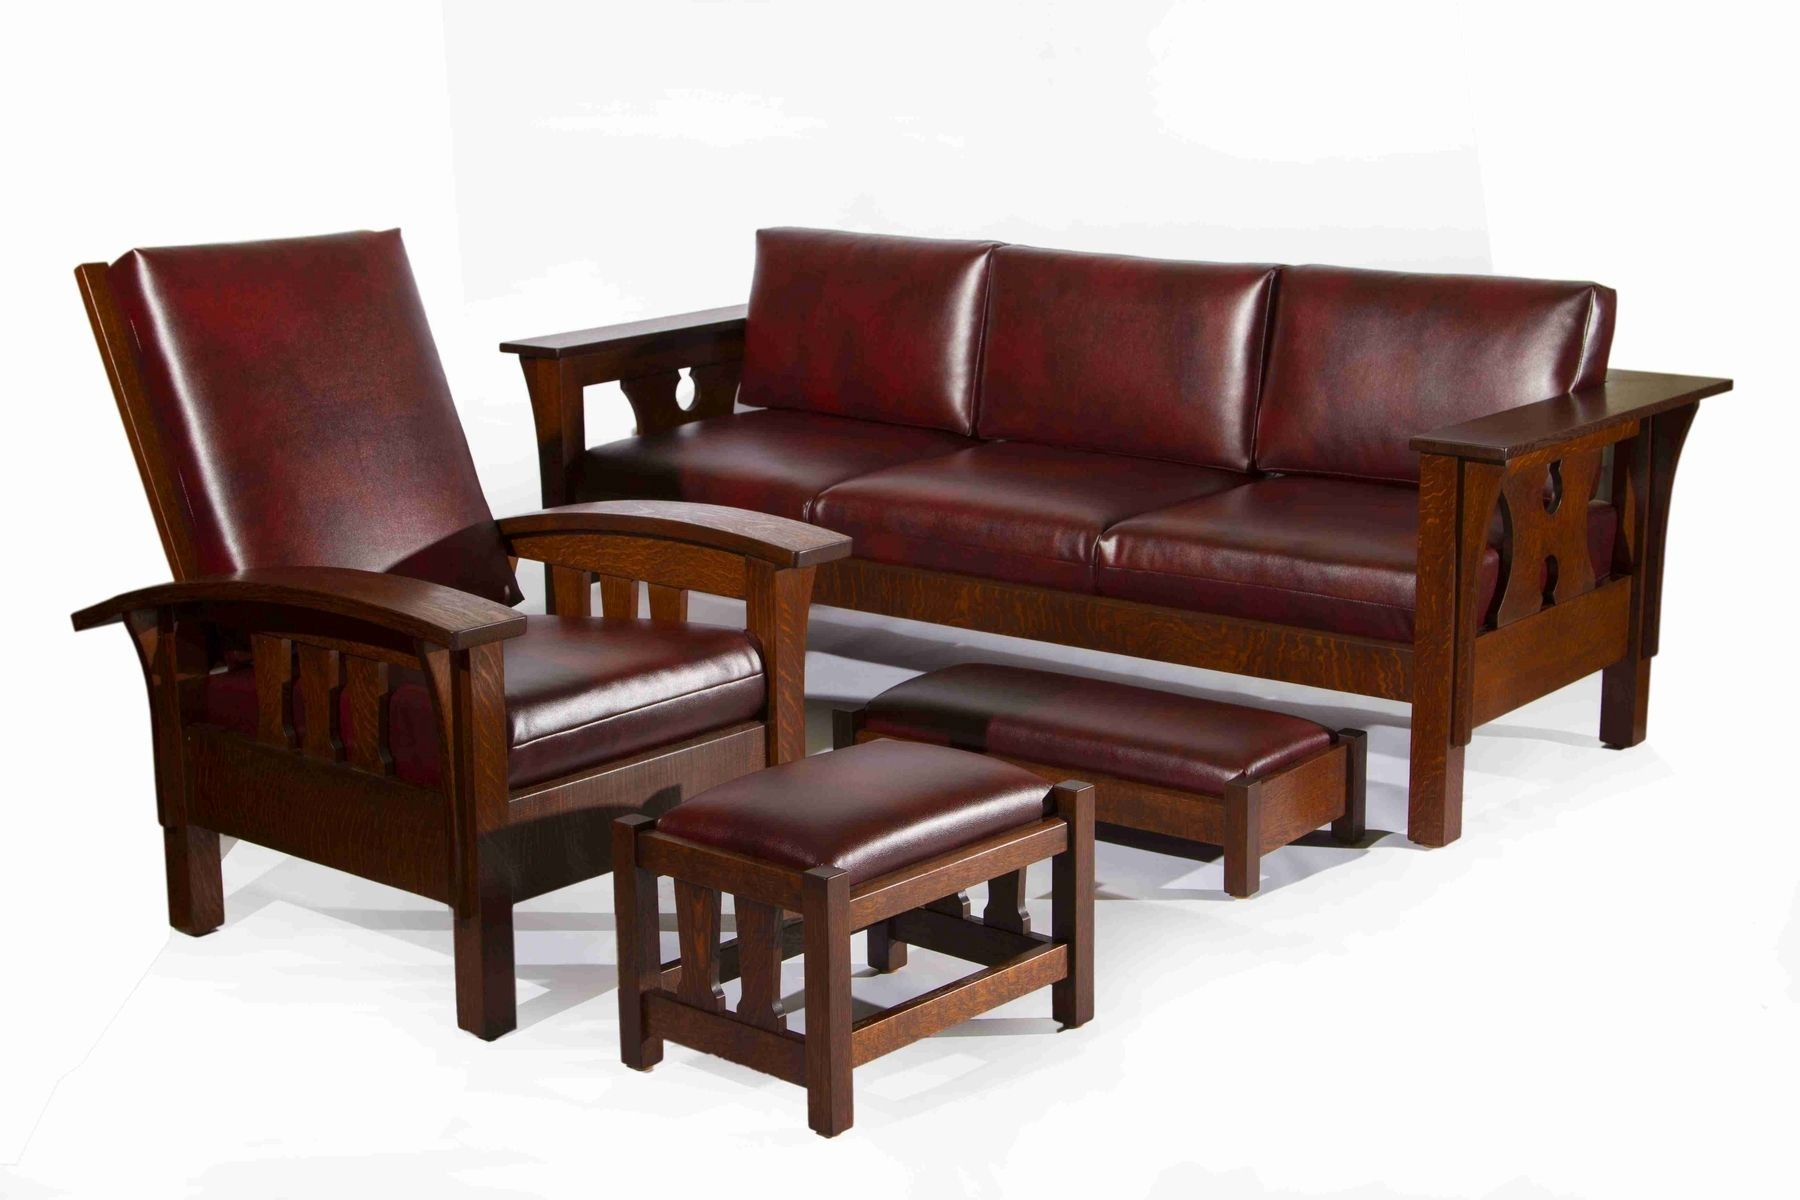 Craftsman Style sofa Luxury Epic Craftsman Style sofa with Additional sofa Table Ideas with Collection